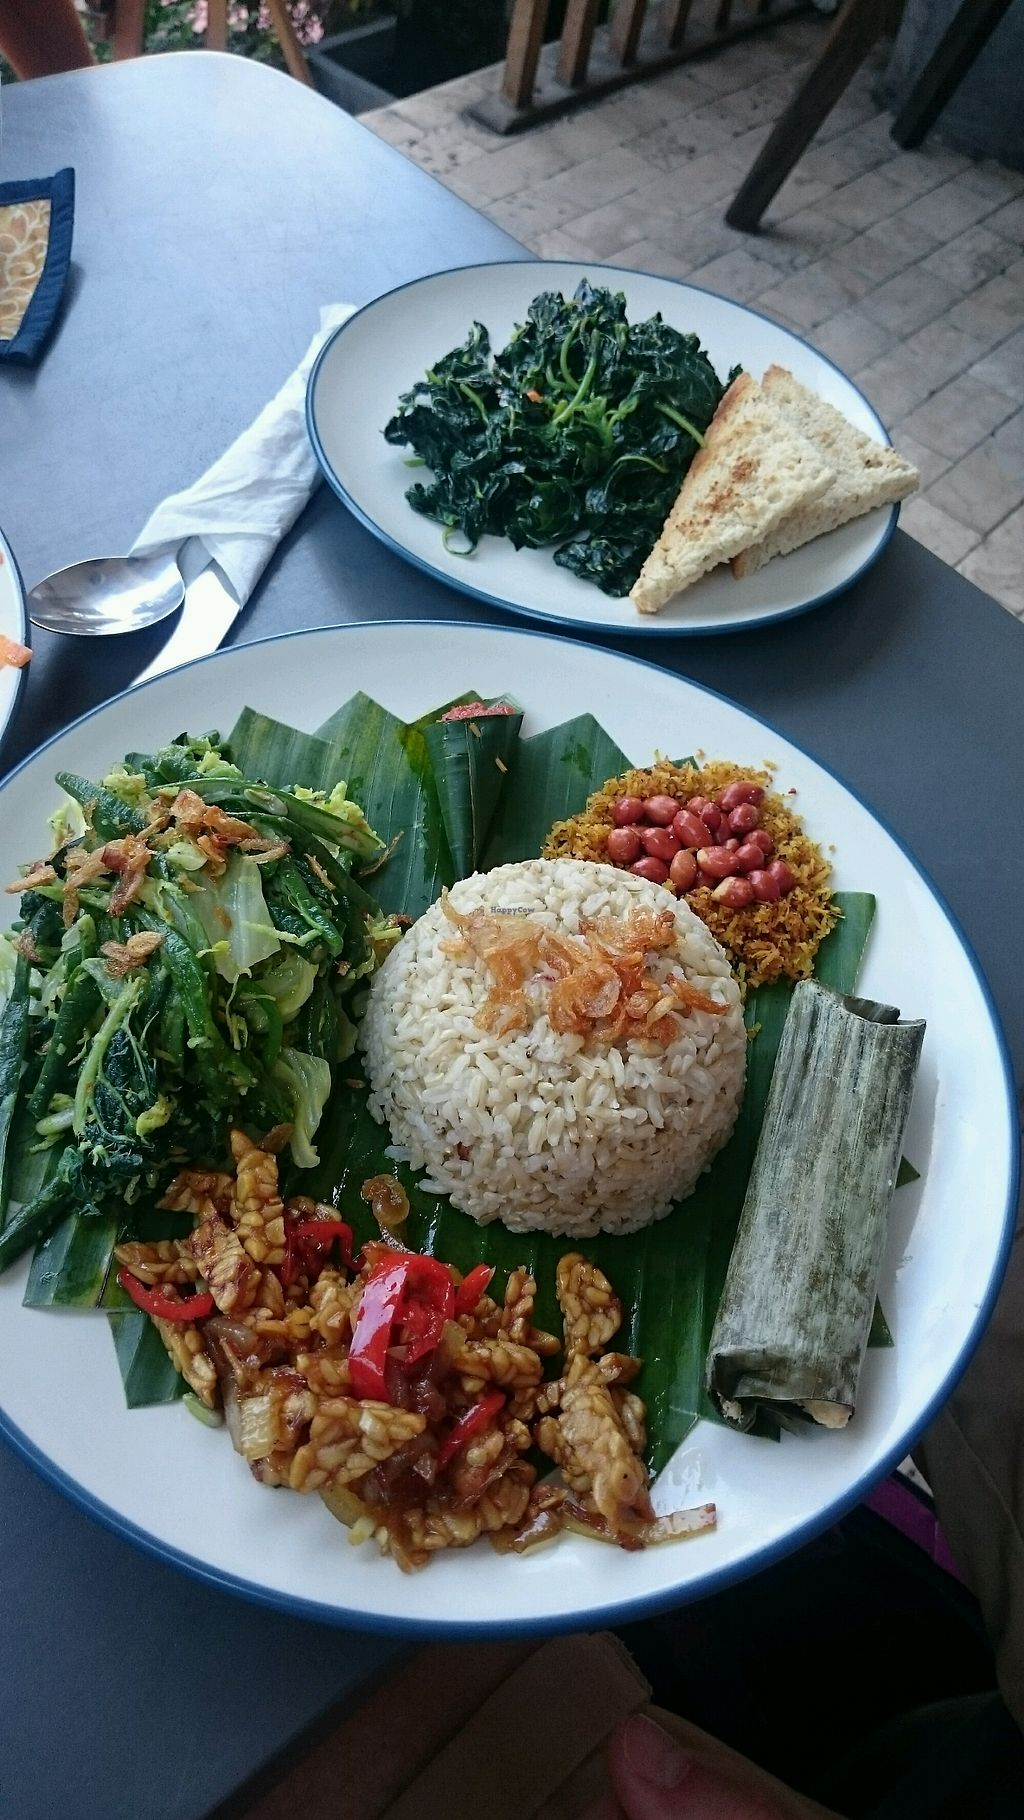 """Photo of Blackbeach  by <a href=""""/members/profile/Alex%26Jay"""">Alex&Jay</a> <br/>Indonesian dish  <br/> August 26, 2017  - <a href='/contact/abuse/image/99607/297684'>Report</a>"""